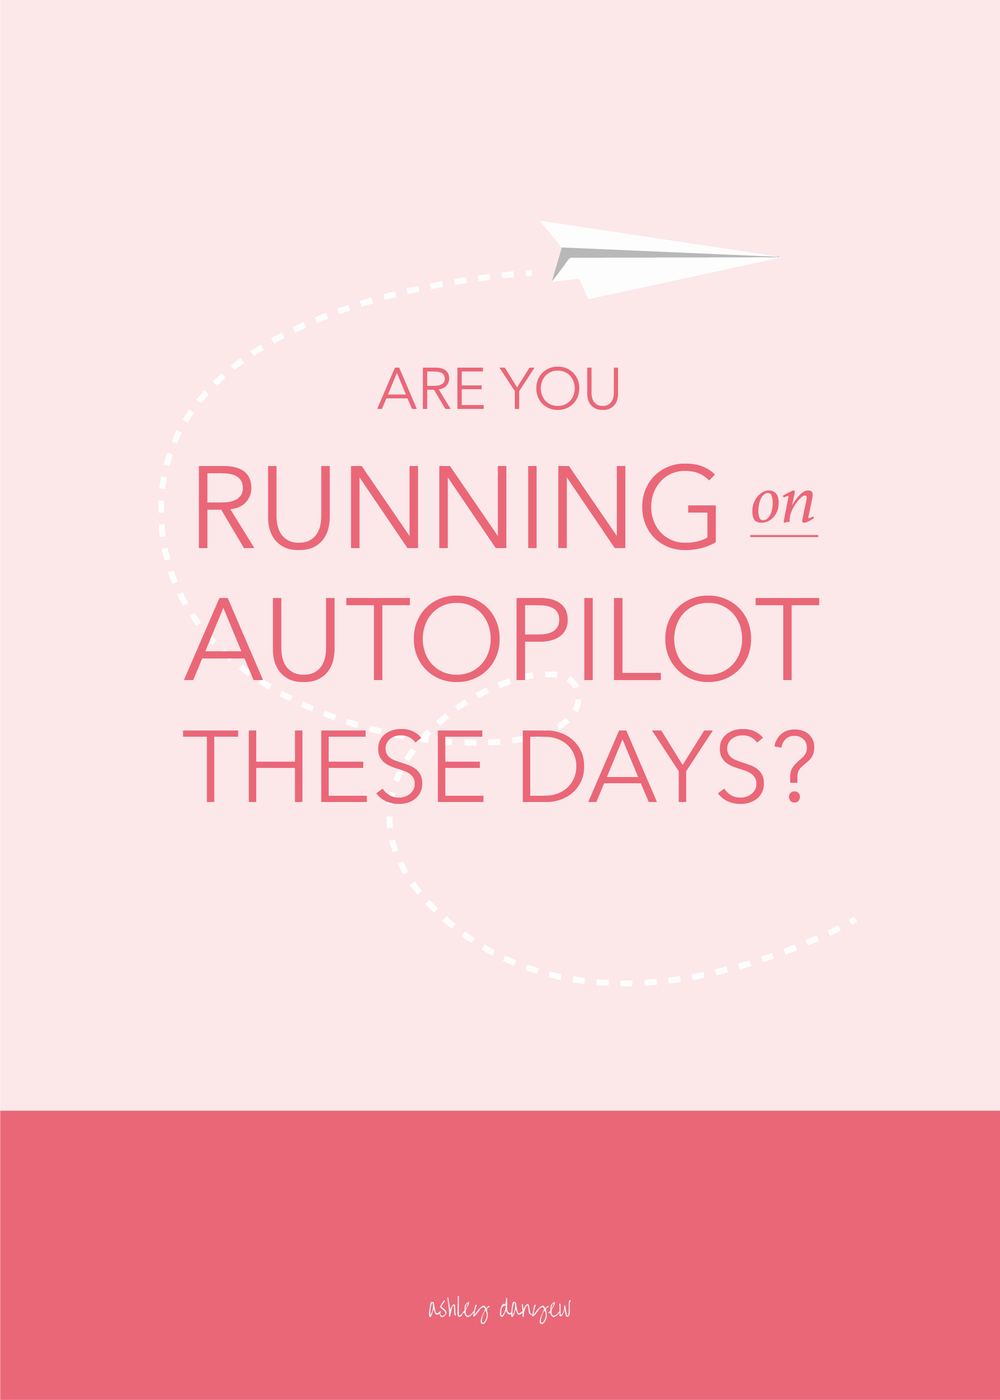 Copy of Are You Running On Autopilot These Days?